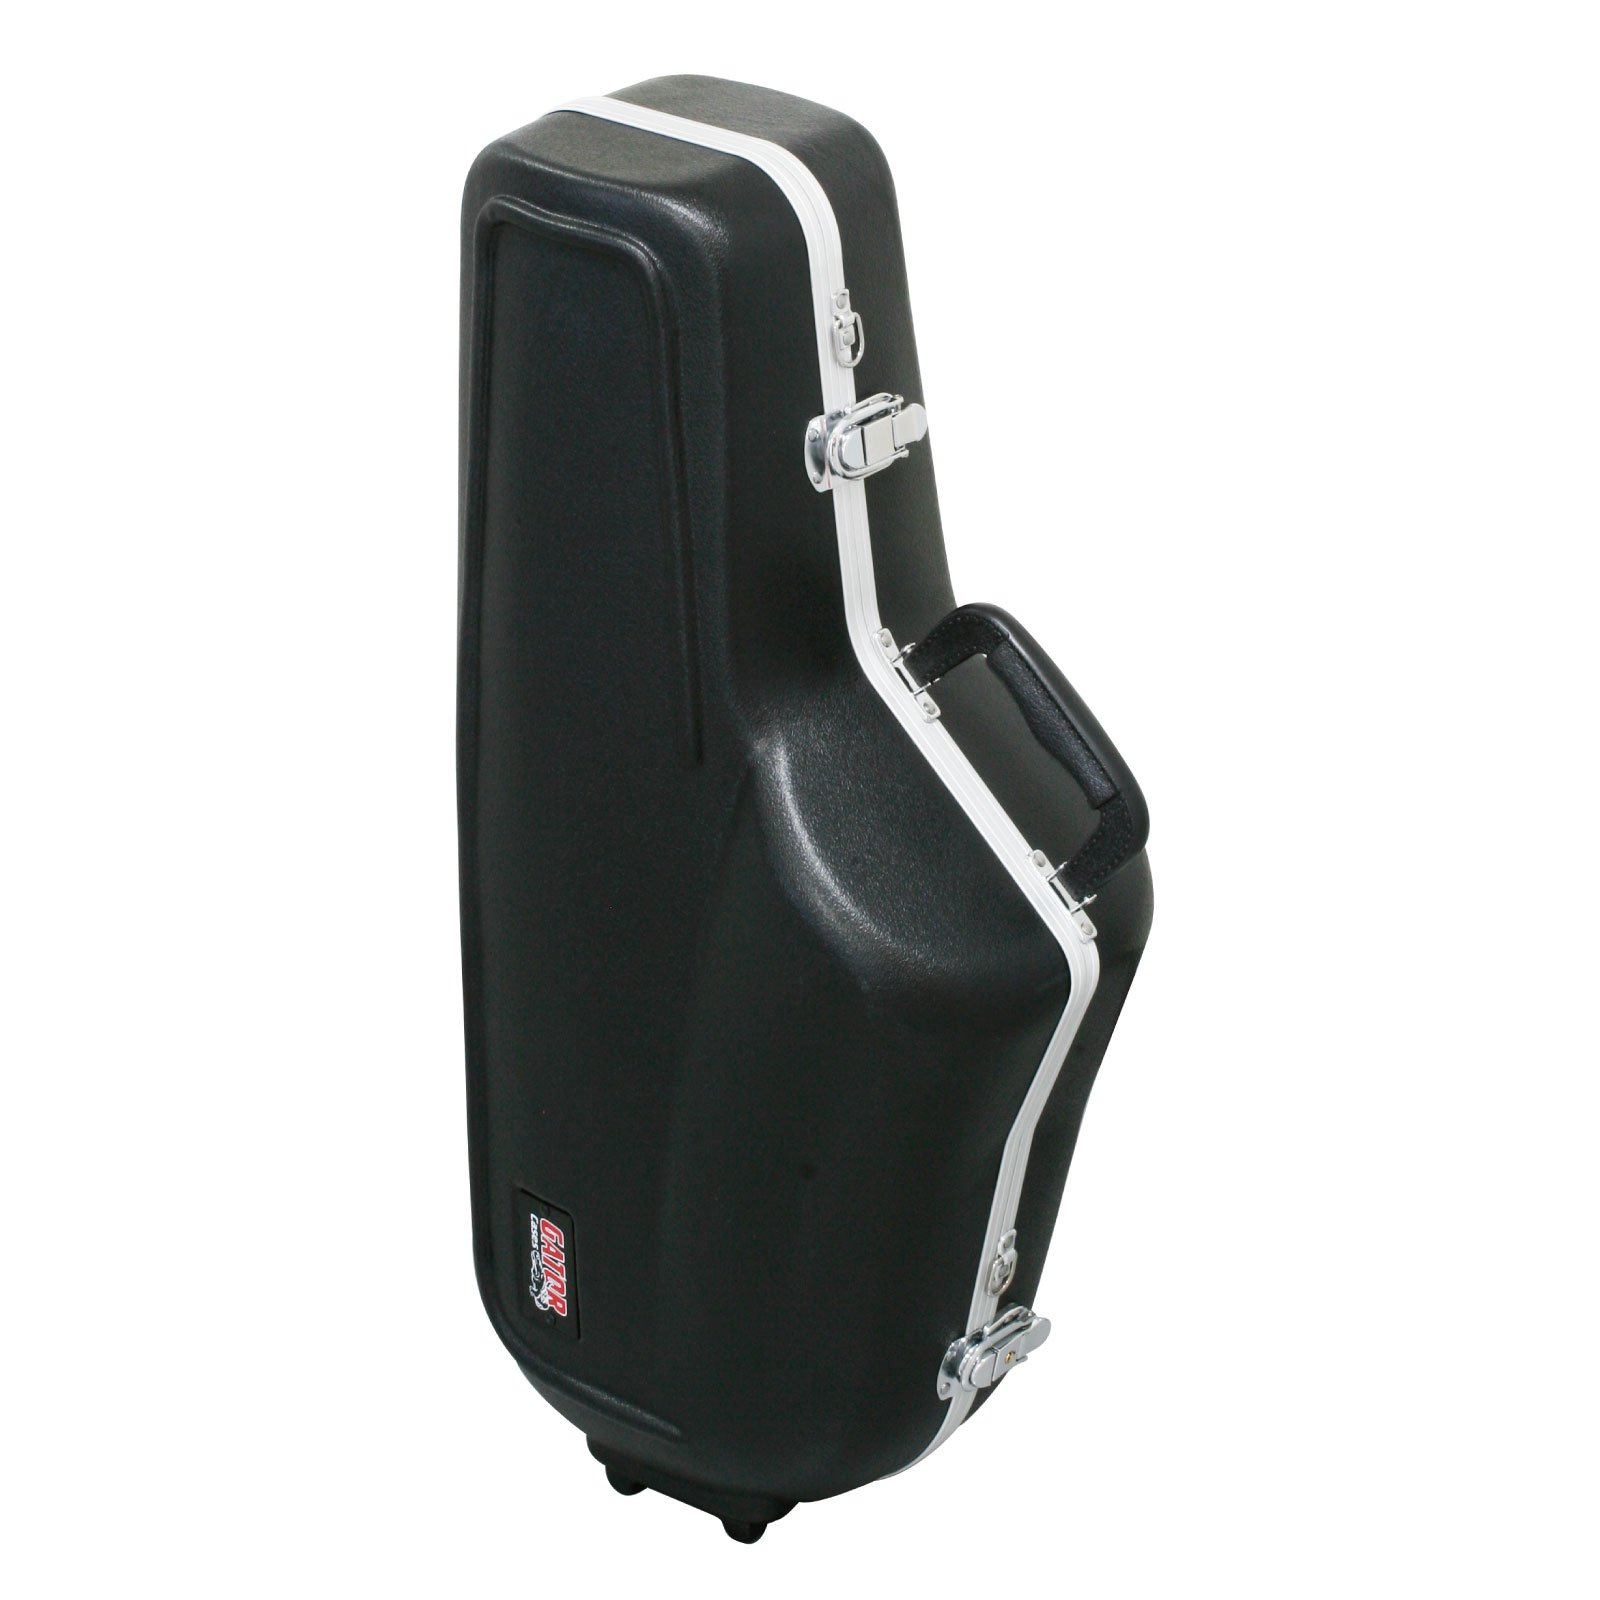 Gator Cases Lightweight Molded Alto Saxophone Case with Locking Latch and Plush Lined Interior (GC-ALTO SAX)